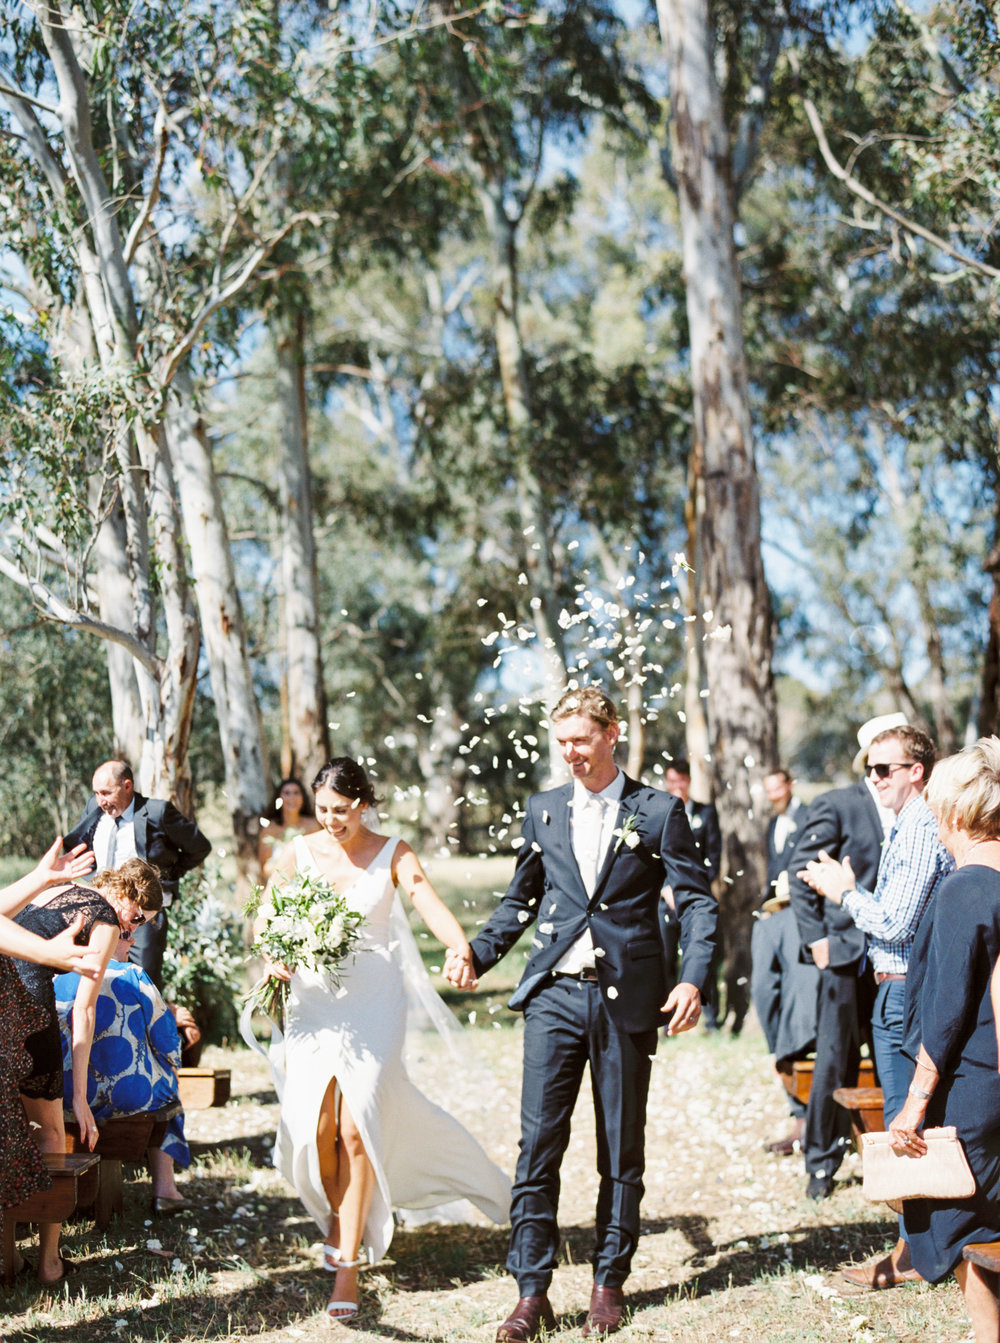 00035- Olive Tree Mediterranean Wedding in Mudgee NSW Australia Fine Art Film Wedding Lifestyle Photographer Sheri McMahon_.jpg